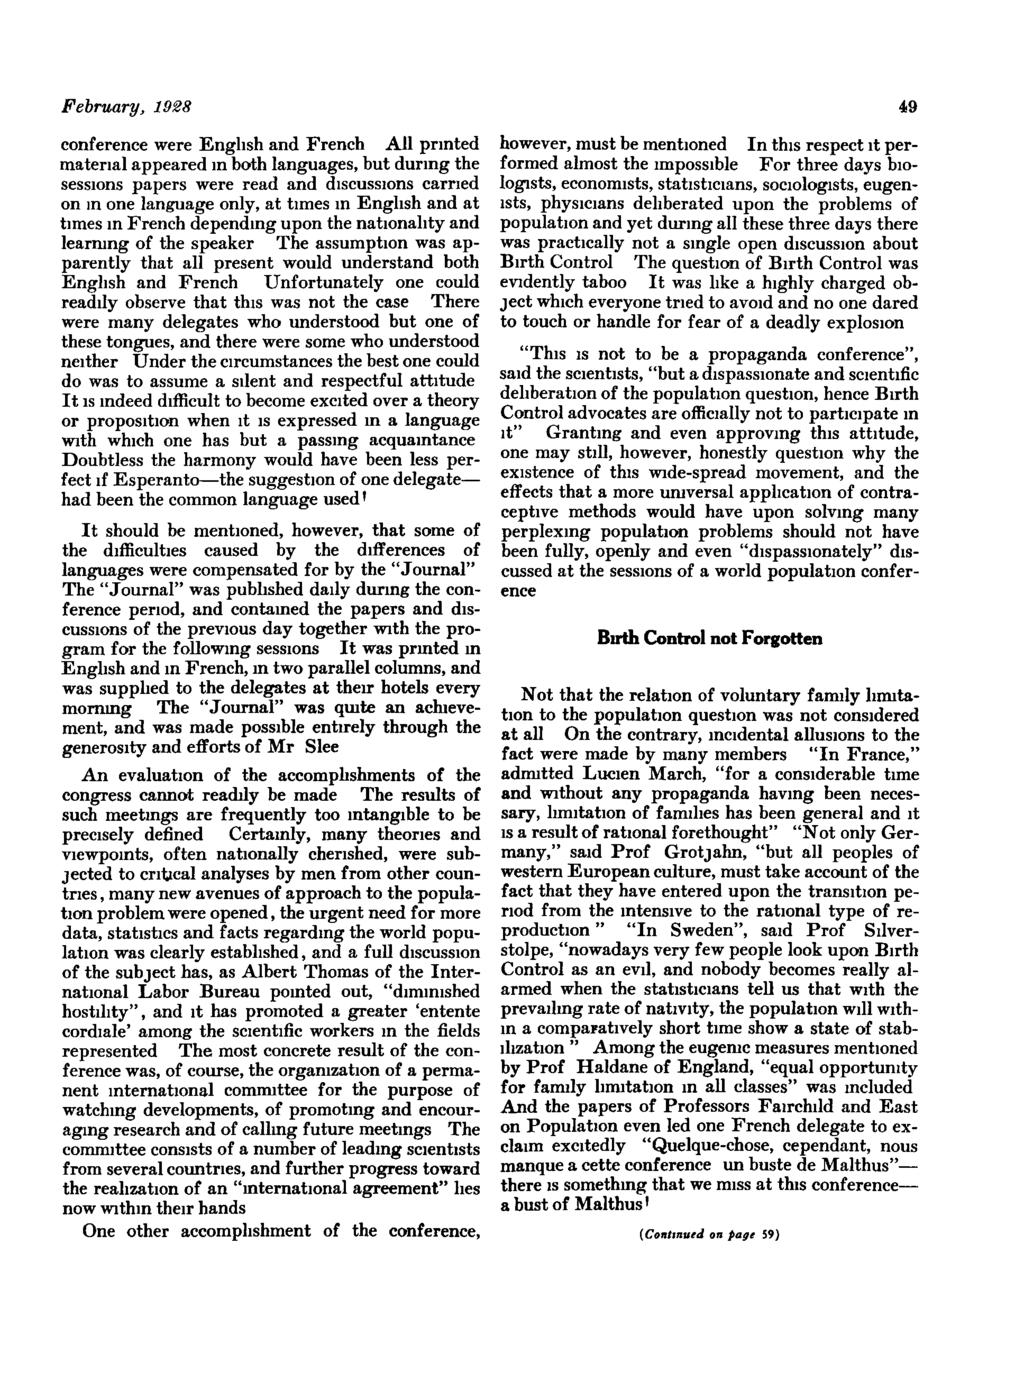 February, 1988 49 conference were English and French All printed material appeared in both languages, but during the sessions papers were read and discussions carried on In one language only, at